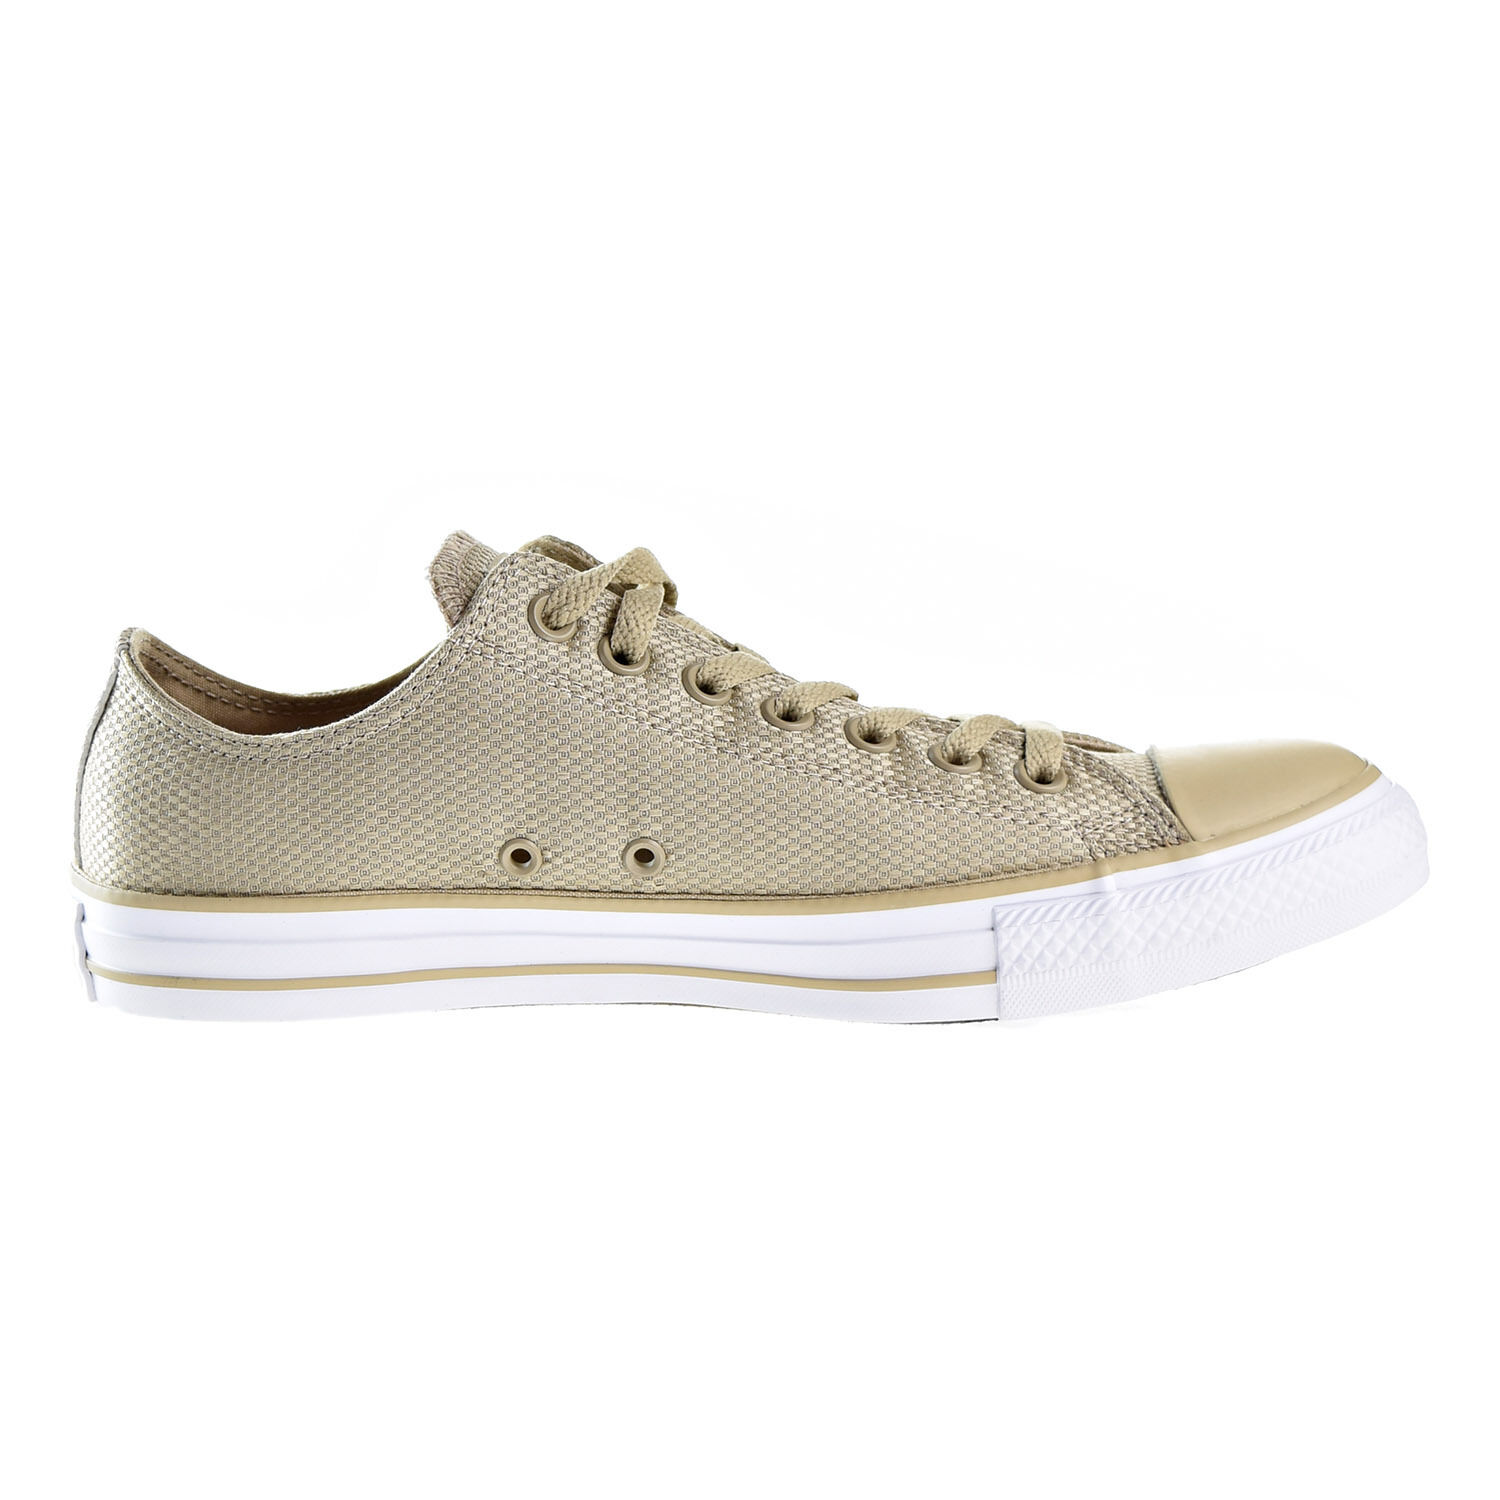 Converse Chuck Taylor All Star OX Unisex Shoes Vintage Khaki/White/Brown 155419f